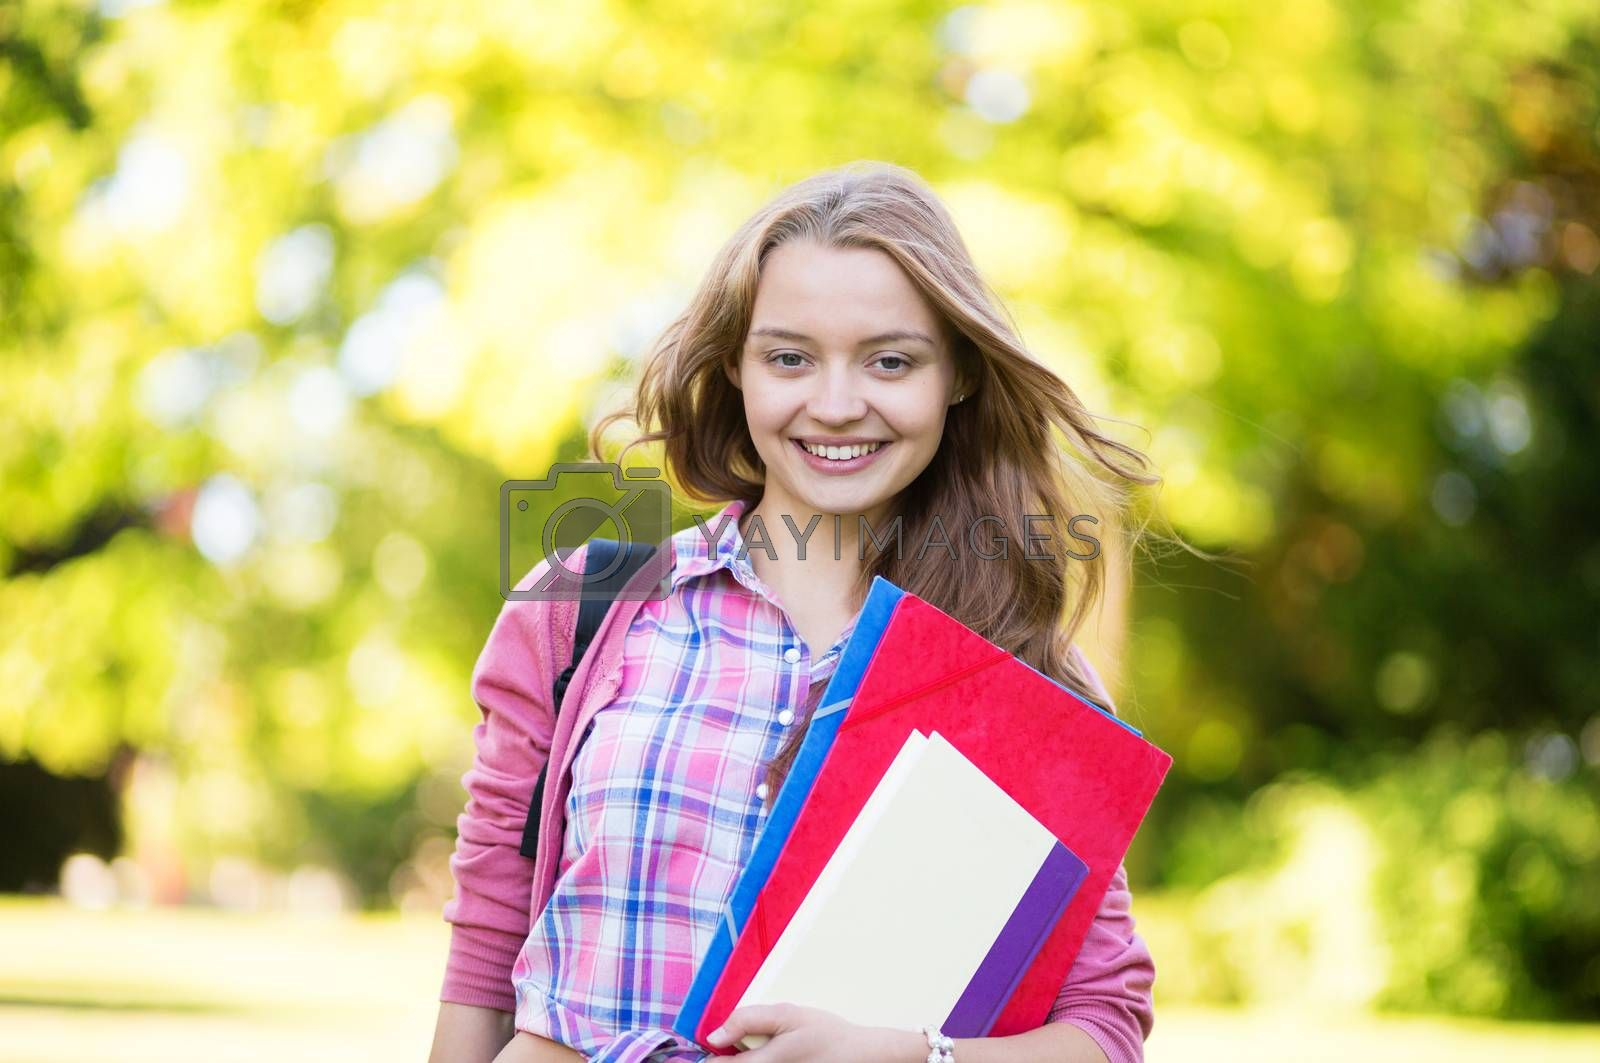 Student girl going back to school and smiling by jaspe